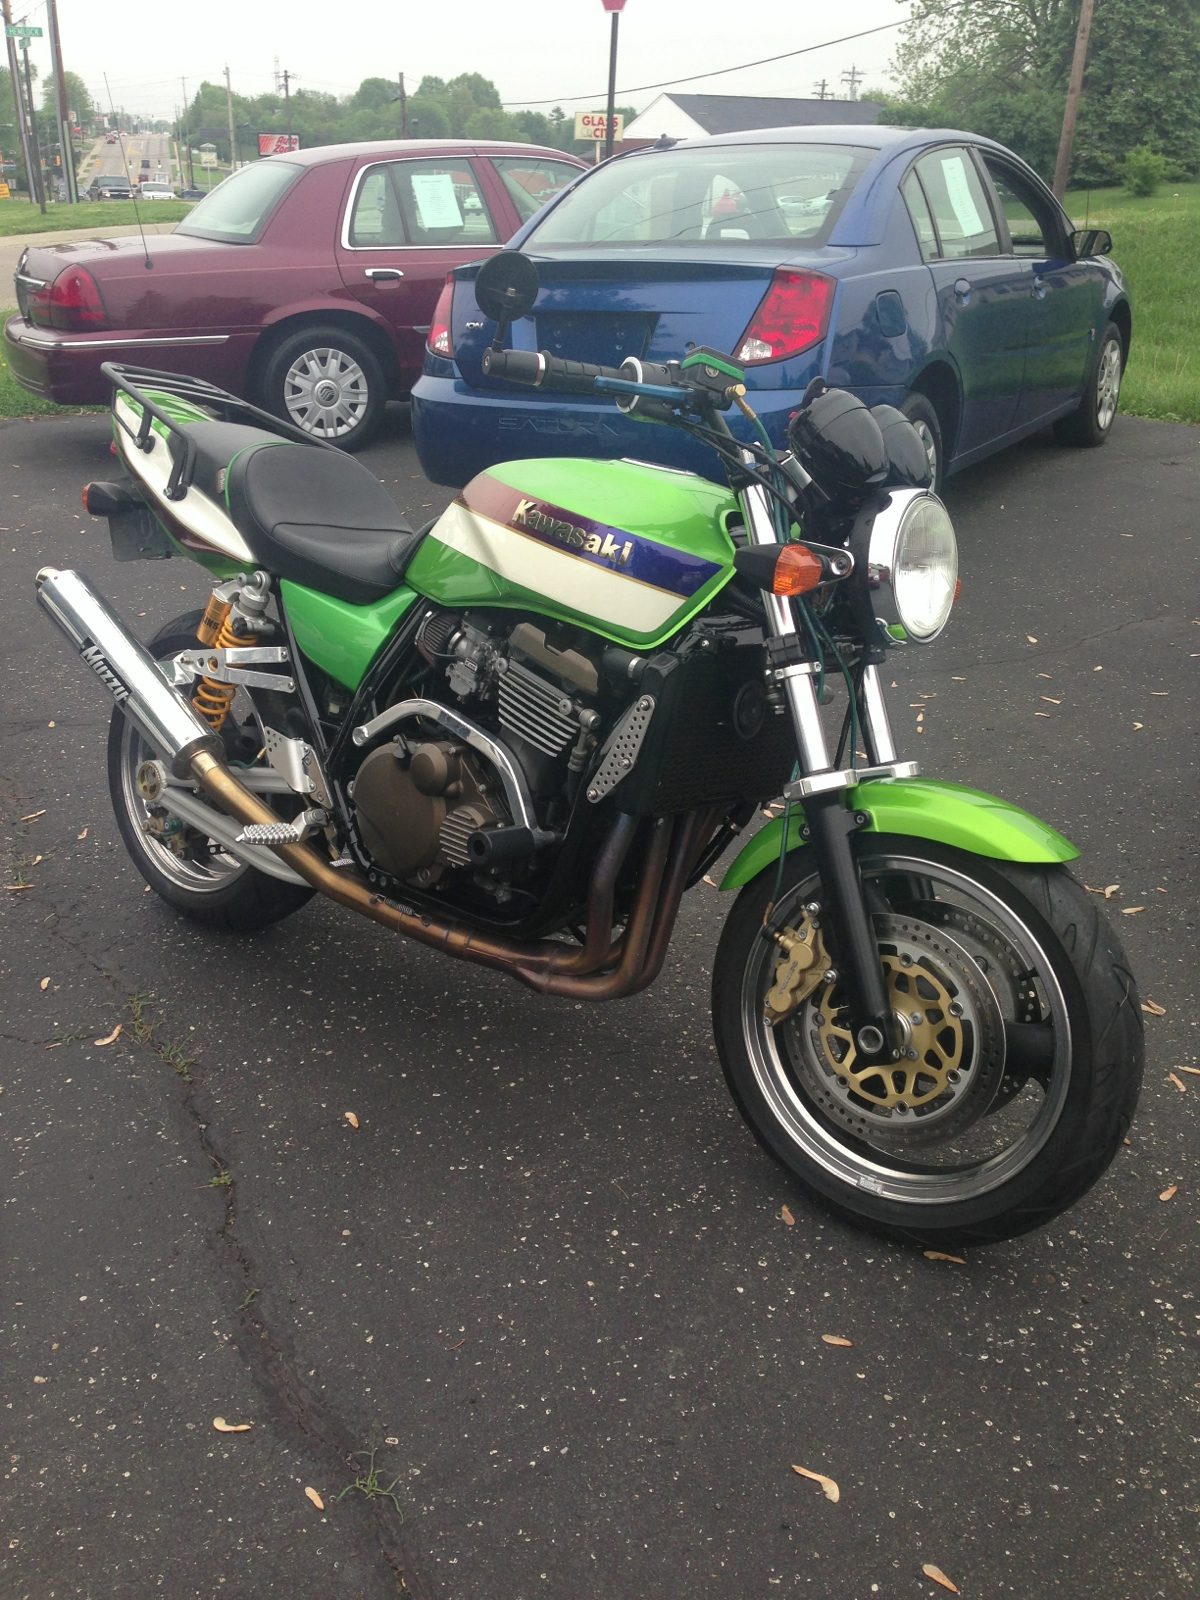 2002 zrx 1200 with only 8,000miles fully muzzy exhaust k&n filters cammed, after market shocks brake levers brake lines and seat clean nice riding and sounding bike